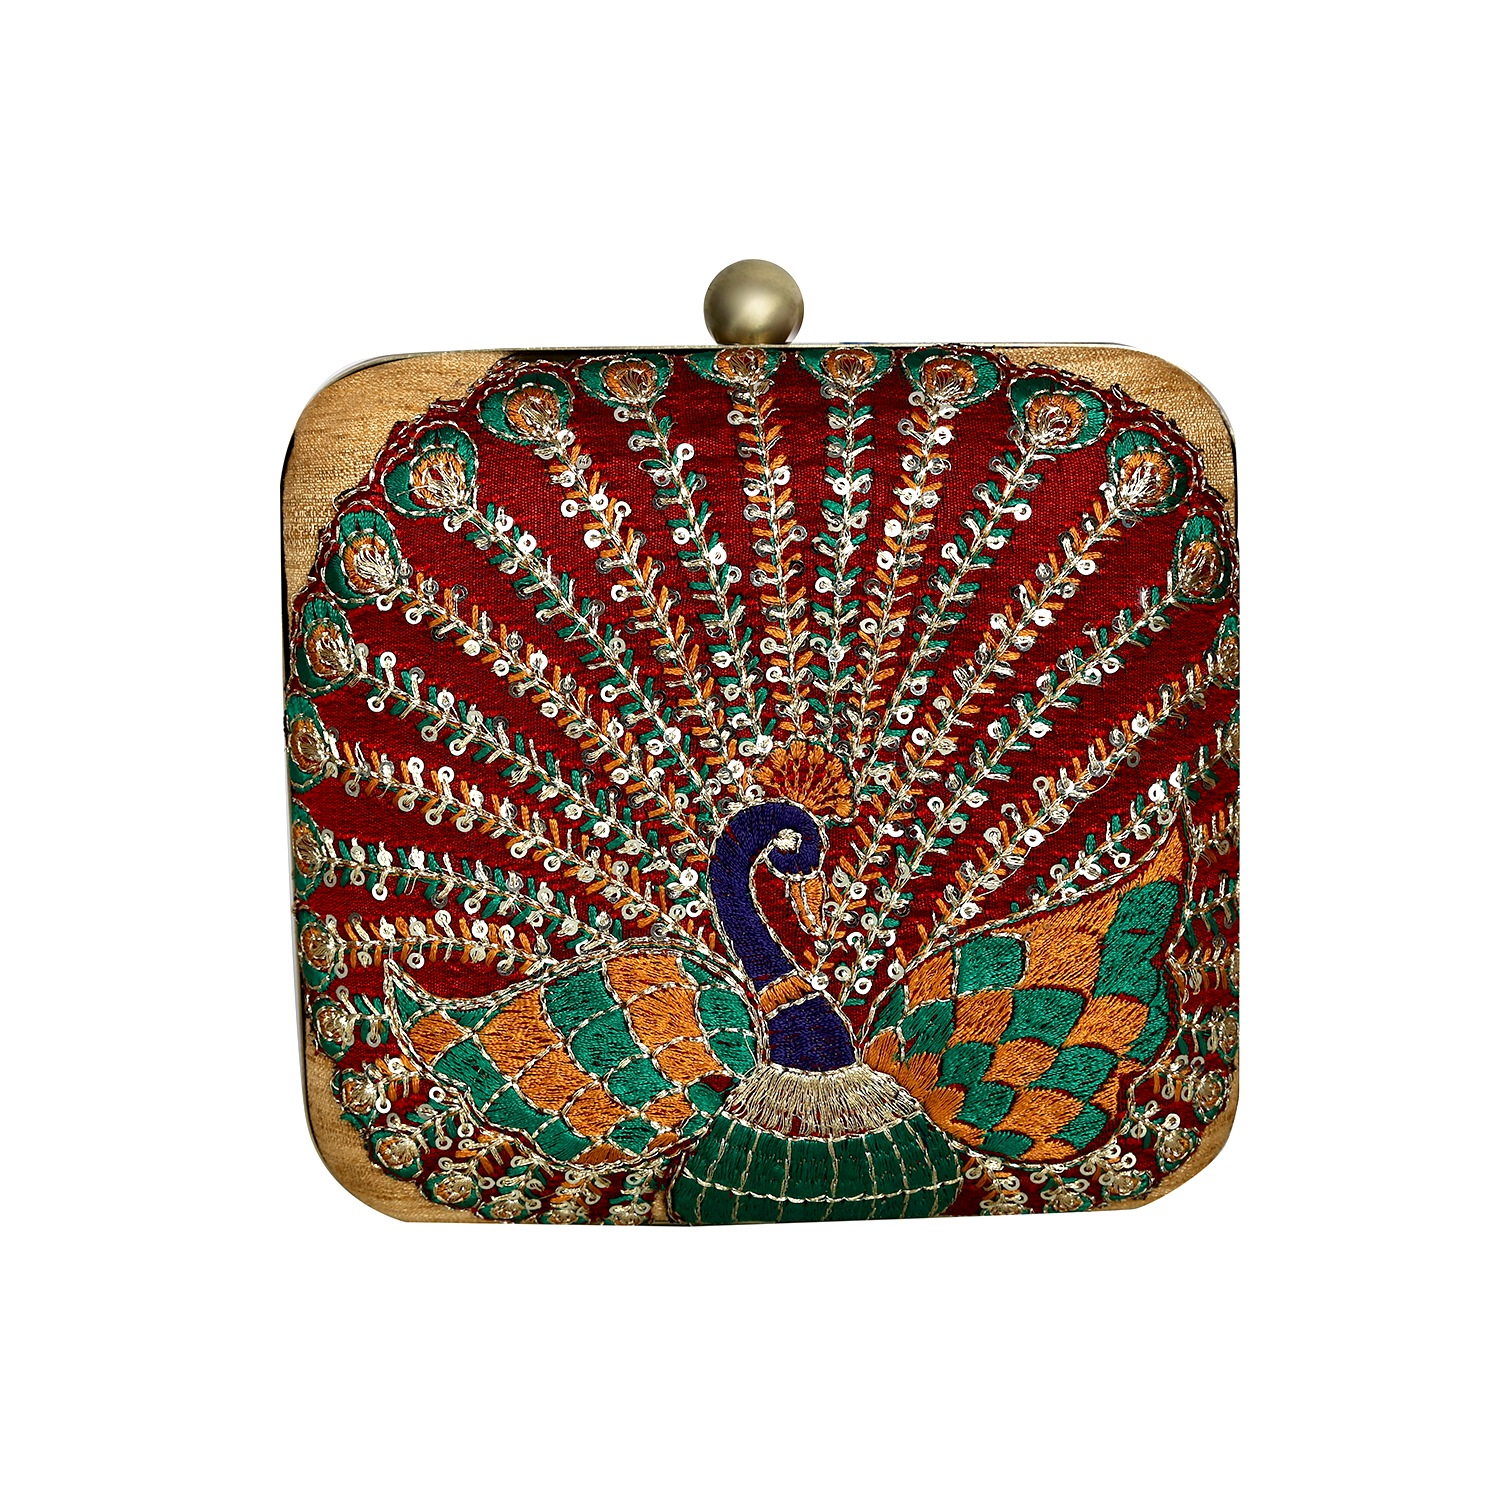 Tarini Nirula Accessories